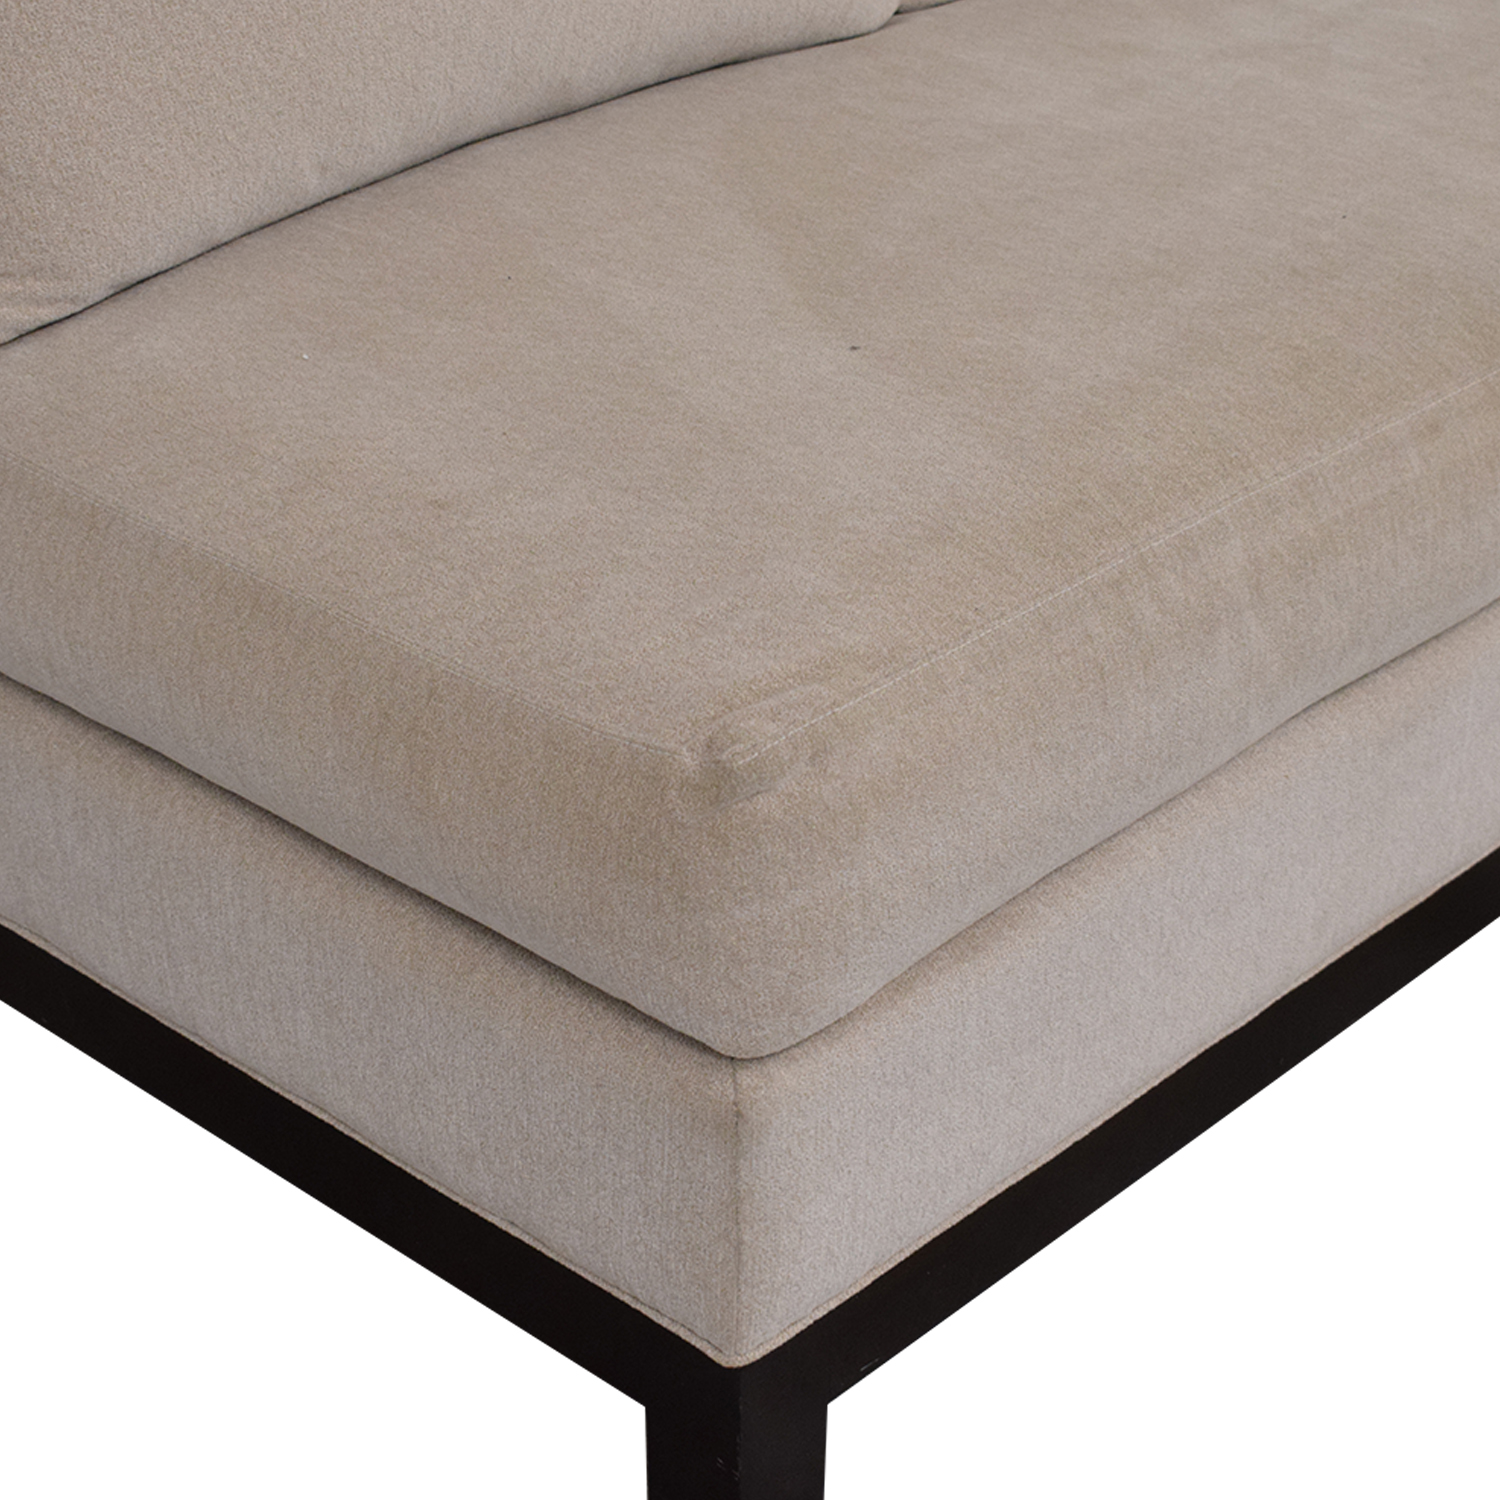 ABC Carpet & Home ABC Carpet & Home Cisco Brothers Armless Loveseat used